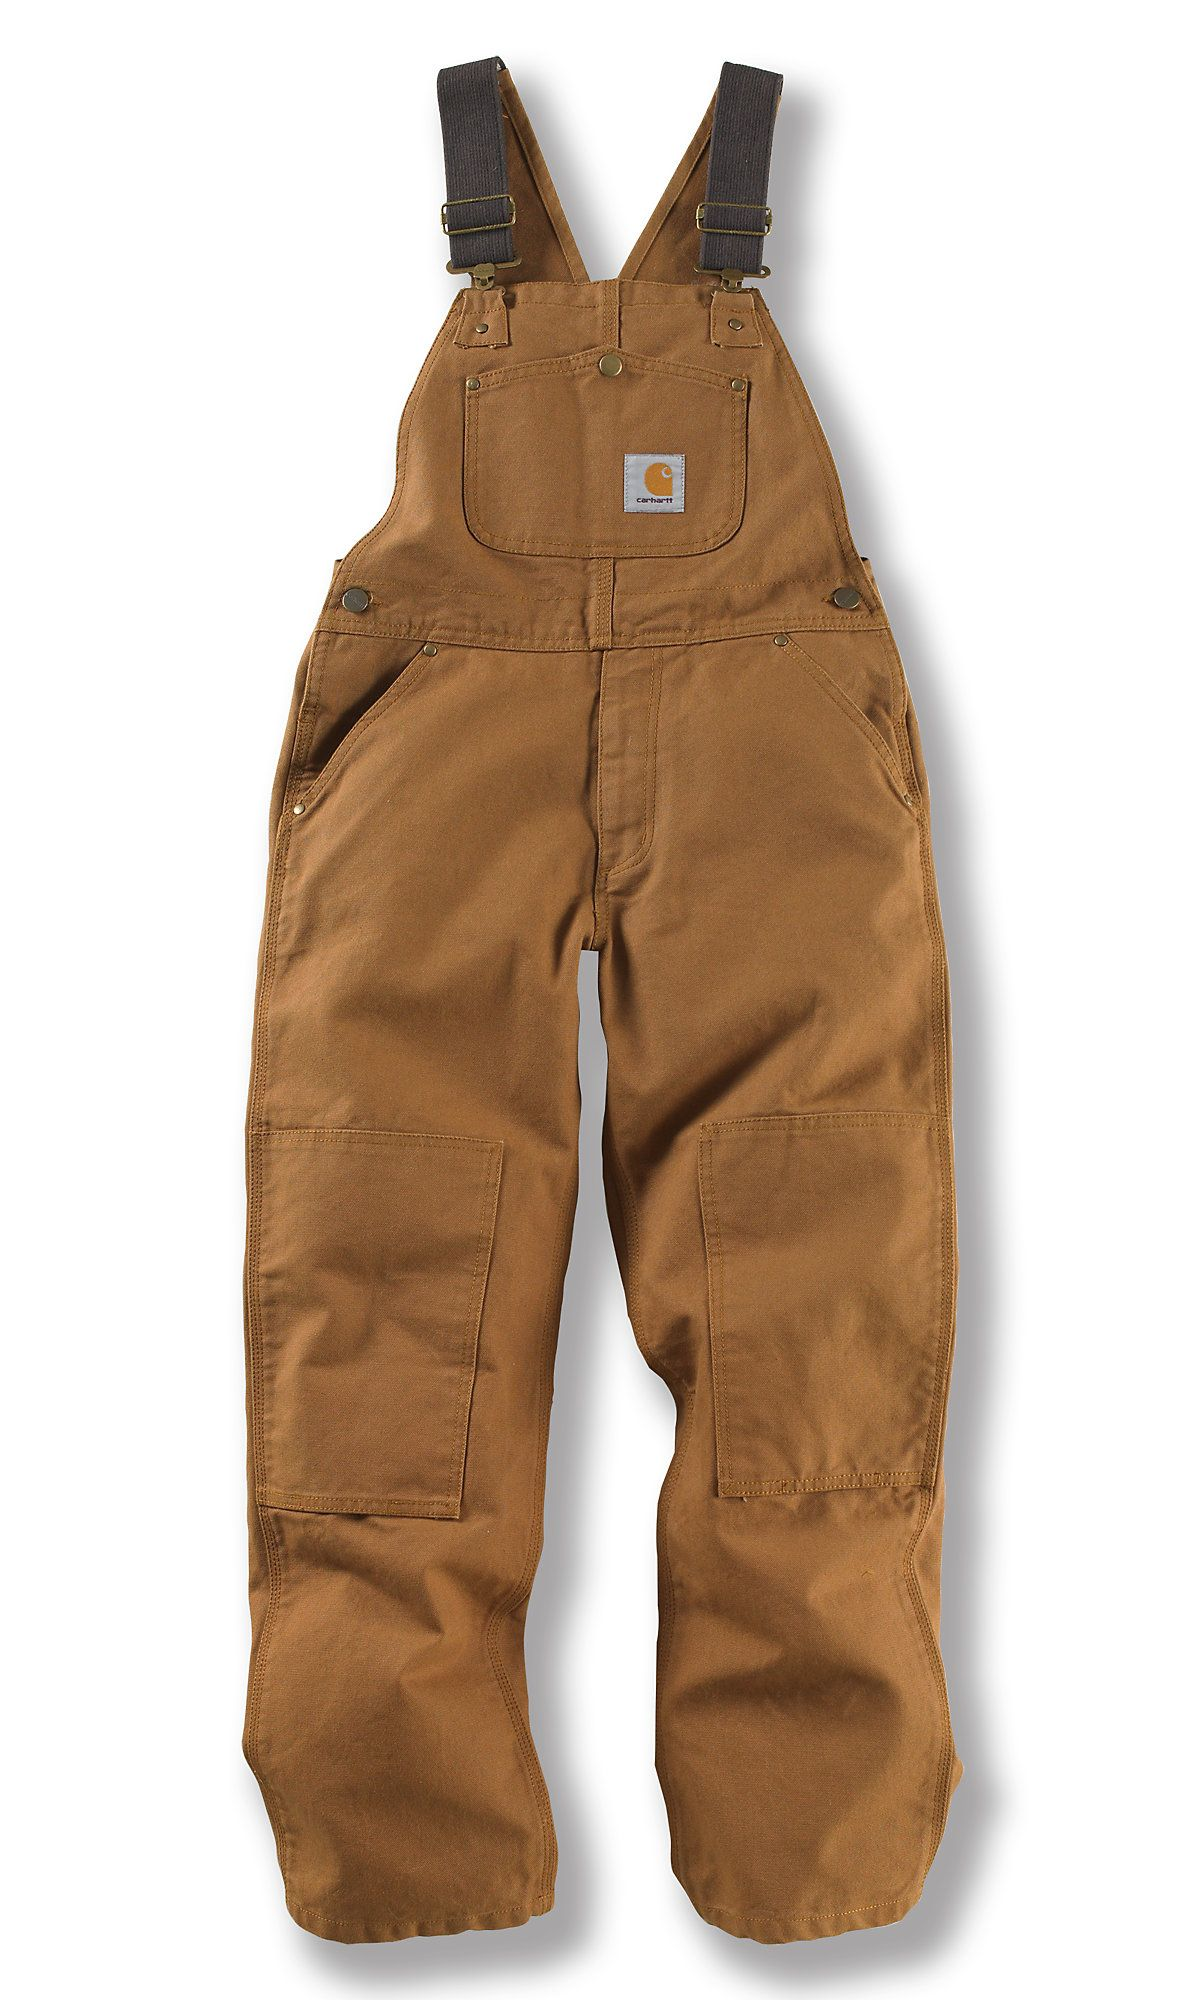 2242b0222bd02 Shop the Duck Washed Bib Overall - Sizes 8-16 for Boys' at Carhartt